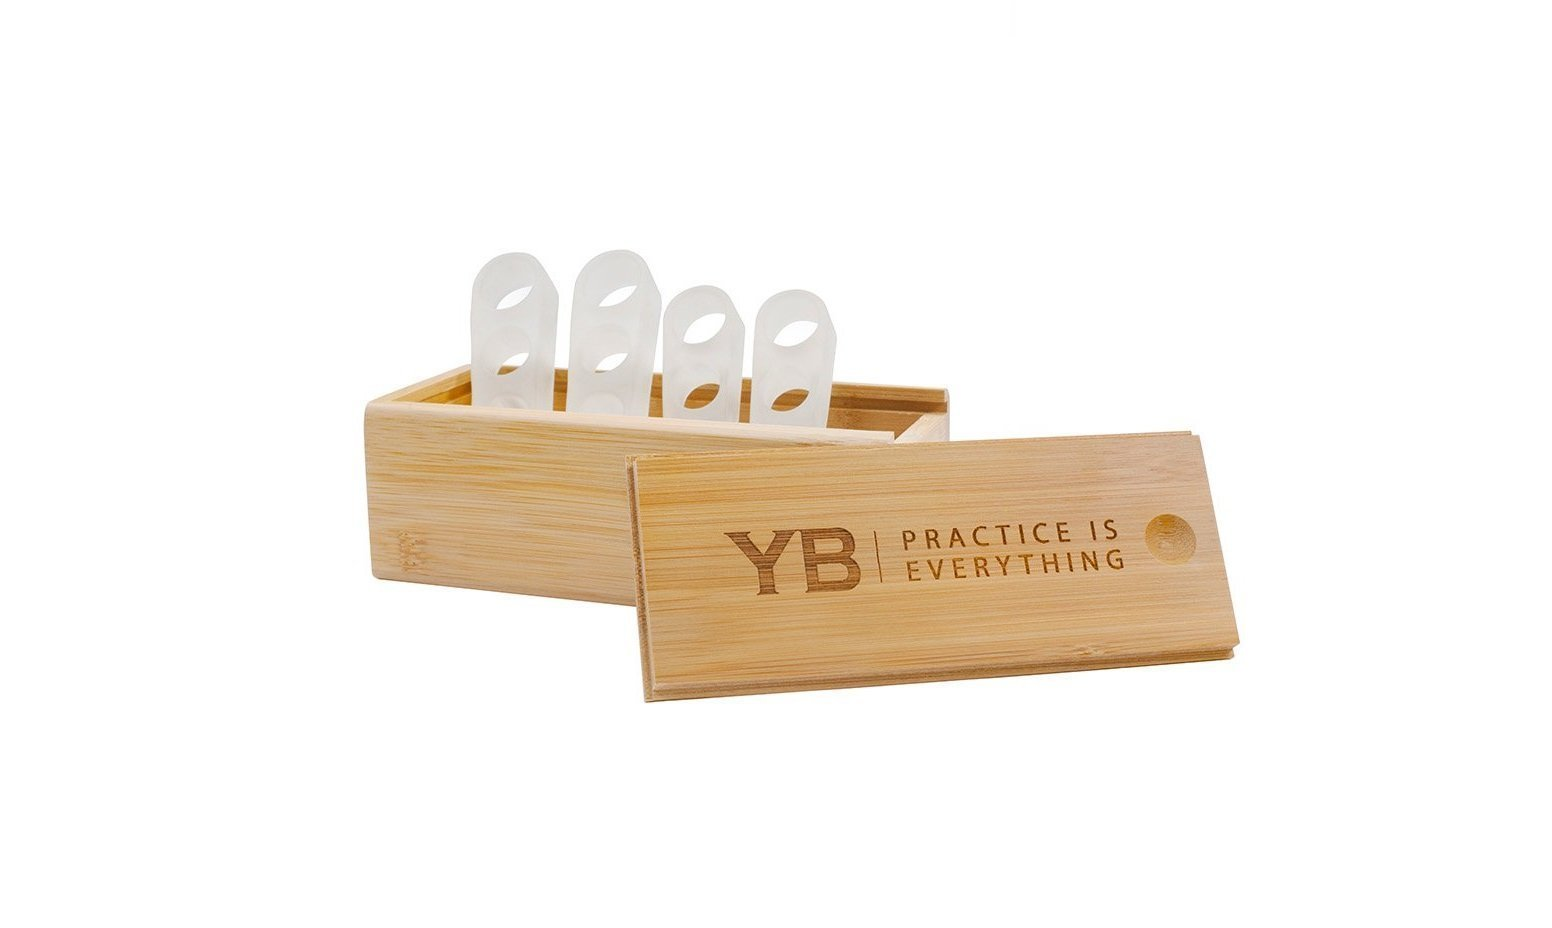 YOGABODY Naturals Toe Spreaders & Separators Two Pairs in Stylish Wooden Box, Awesome Toes, Latex-Free Rubber Toe Stretchers Used for Nighttime, Yoga Practice & Running